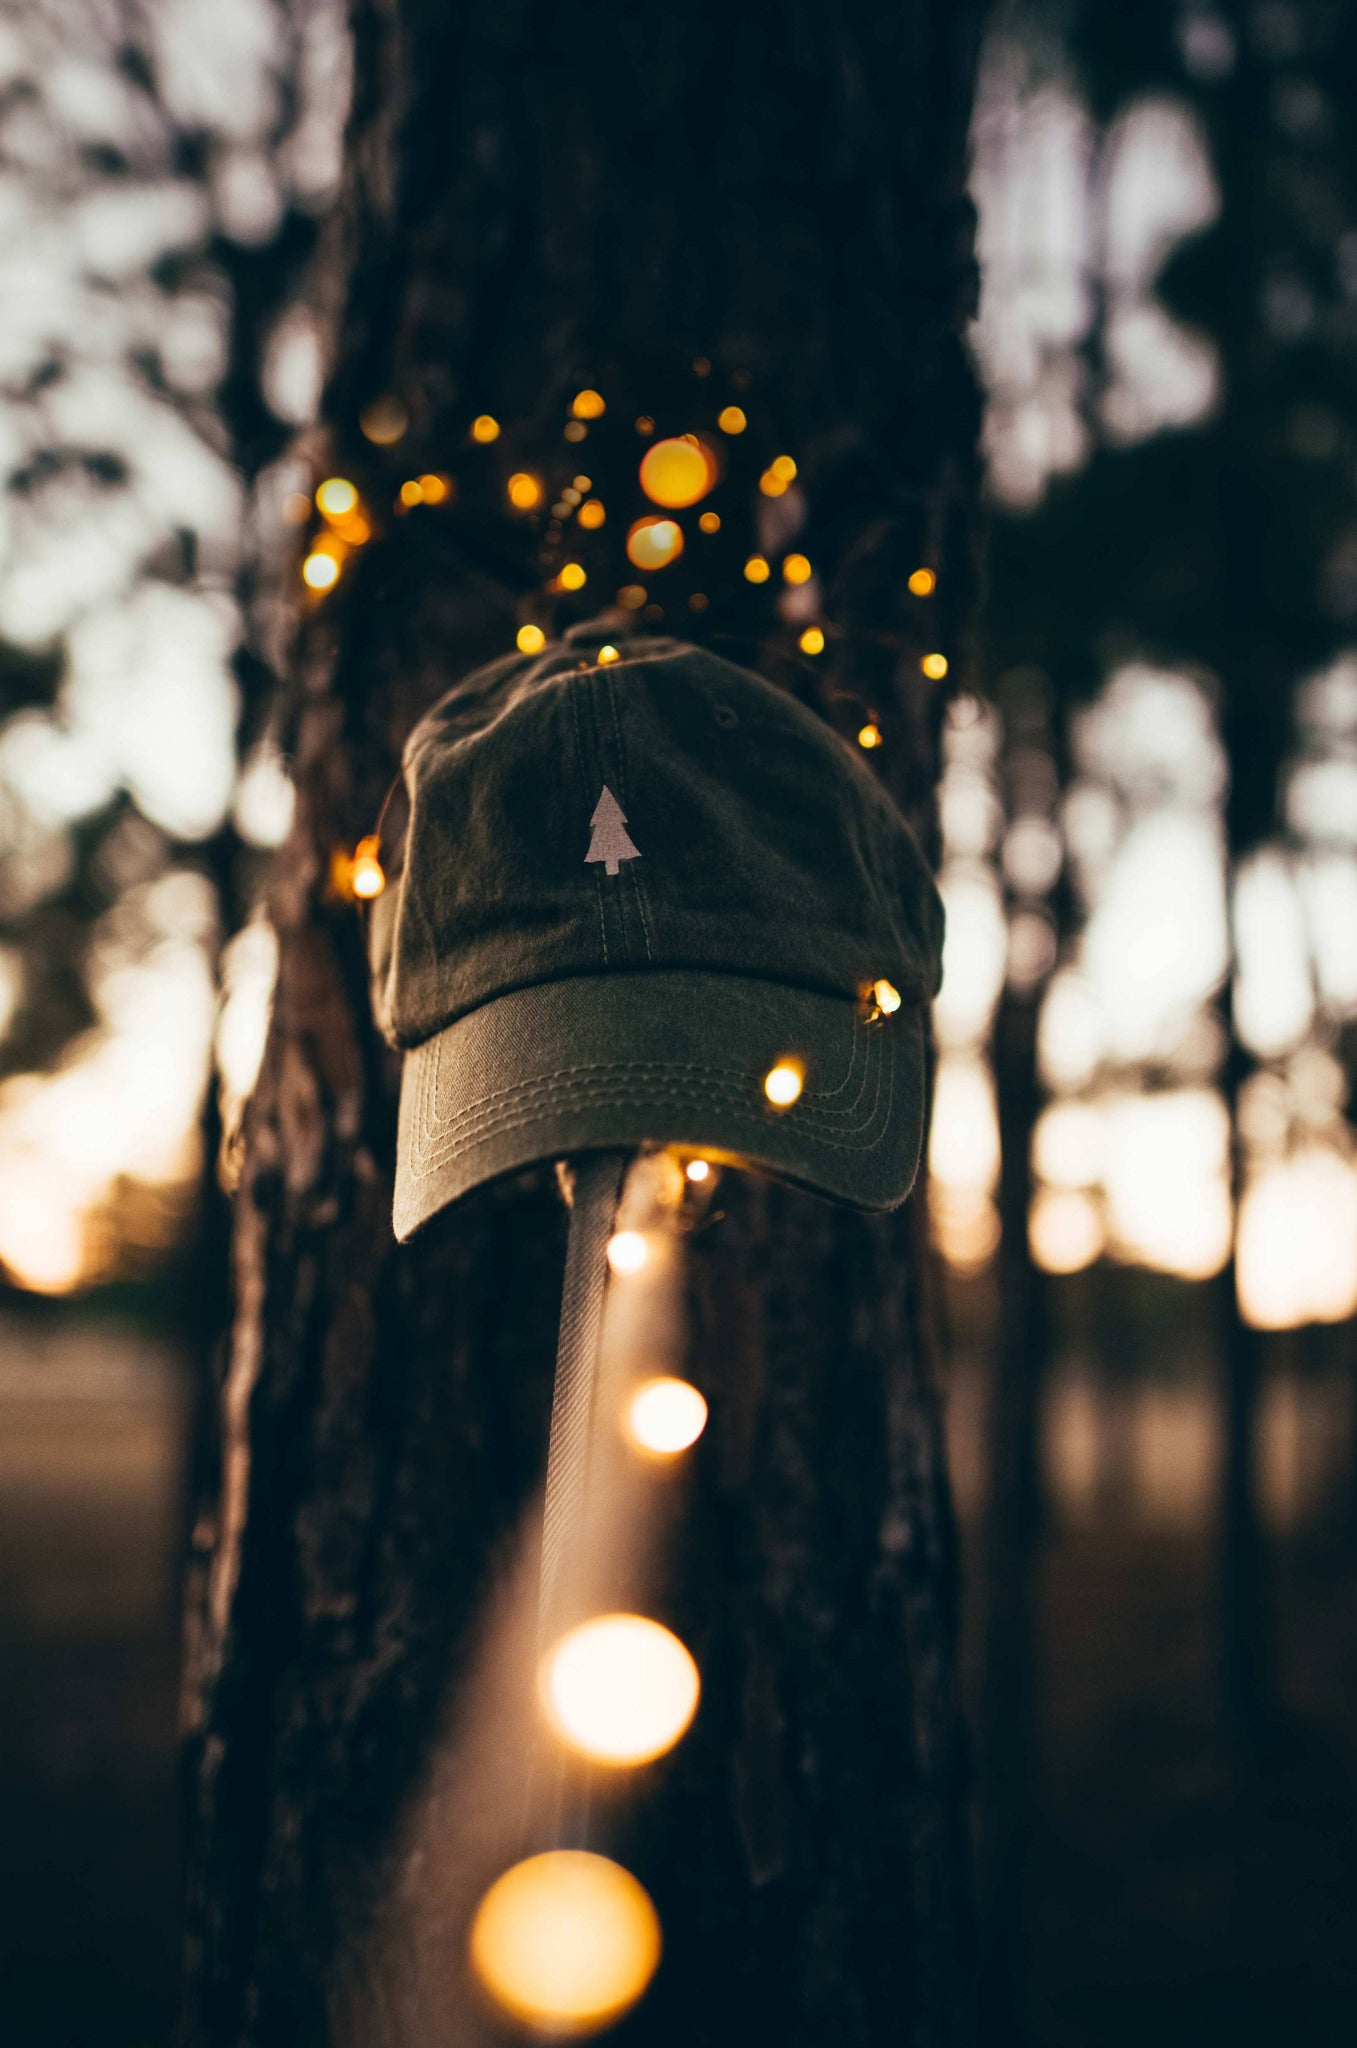 The Parks Pine Tree Dad Hat - The Parks Apparel